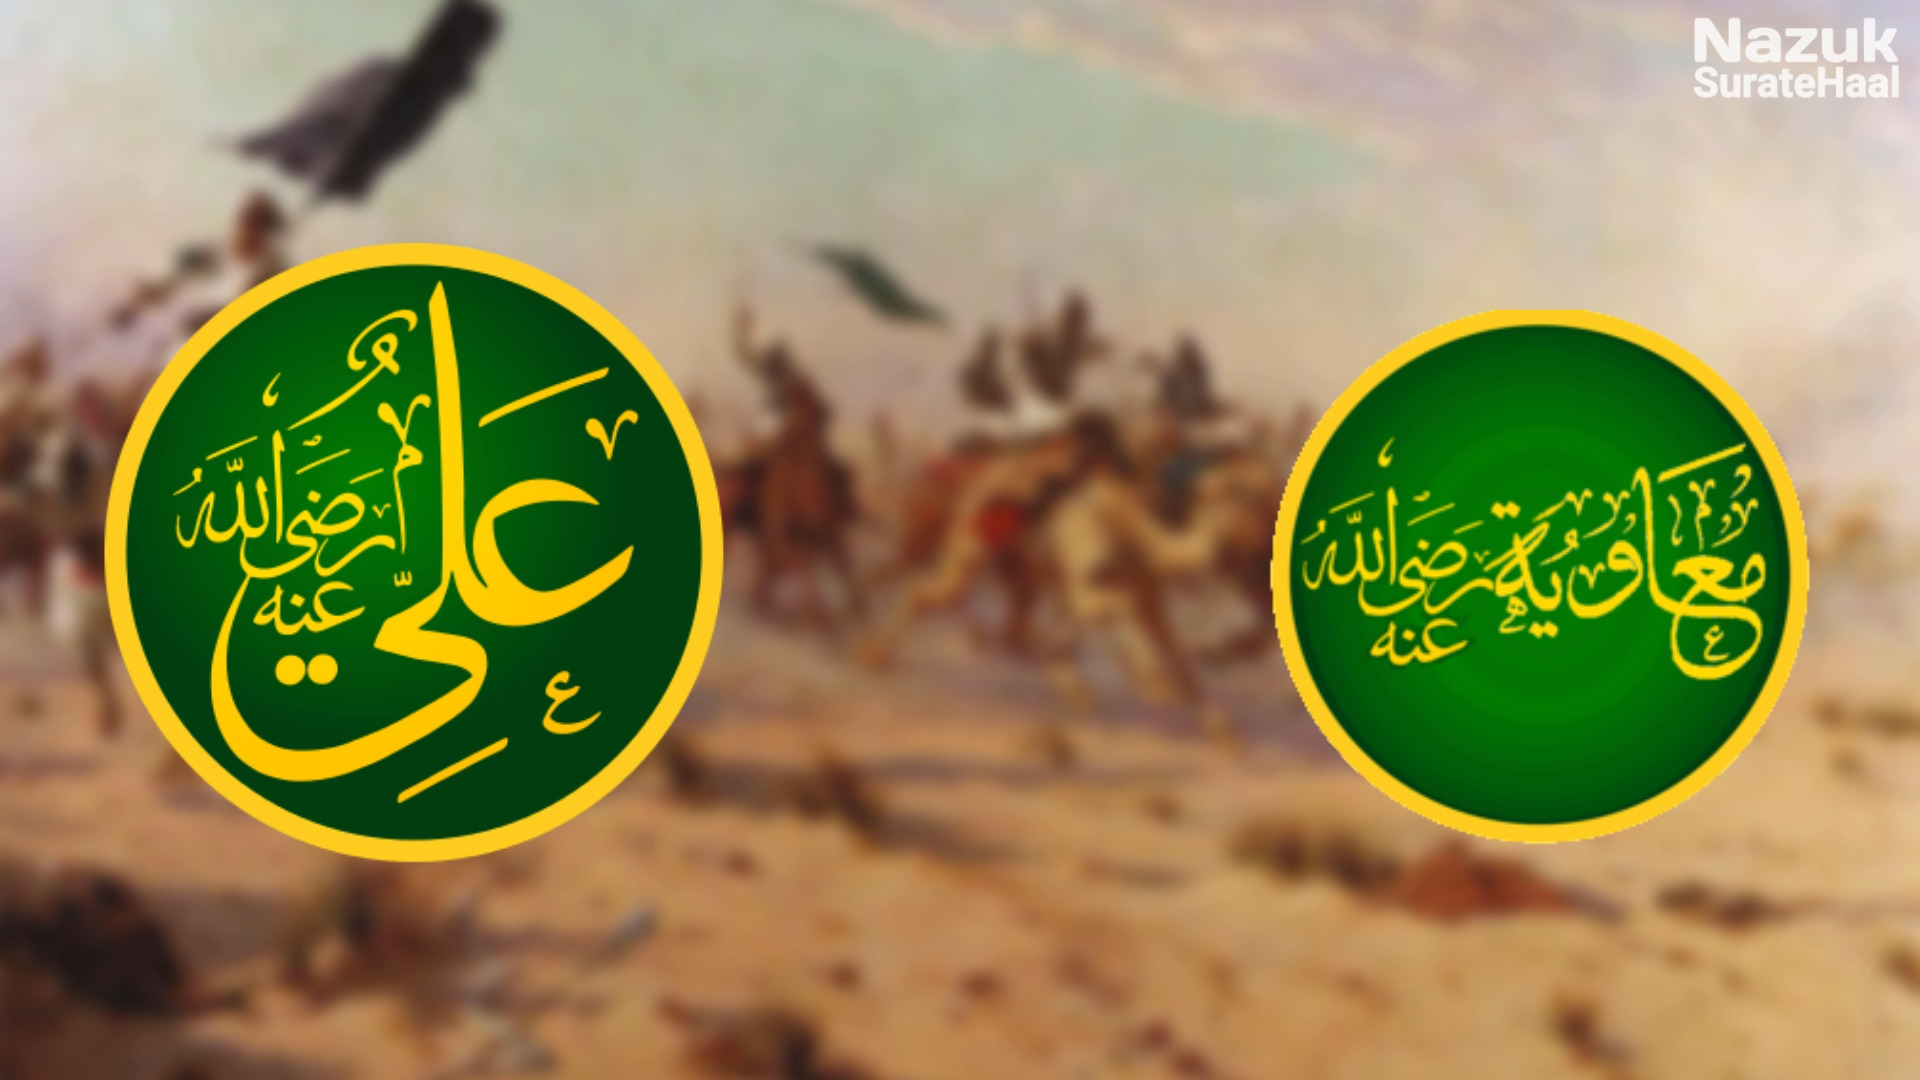 Battle of Siffin was fought between Ali and Muawiyah